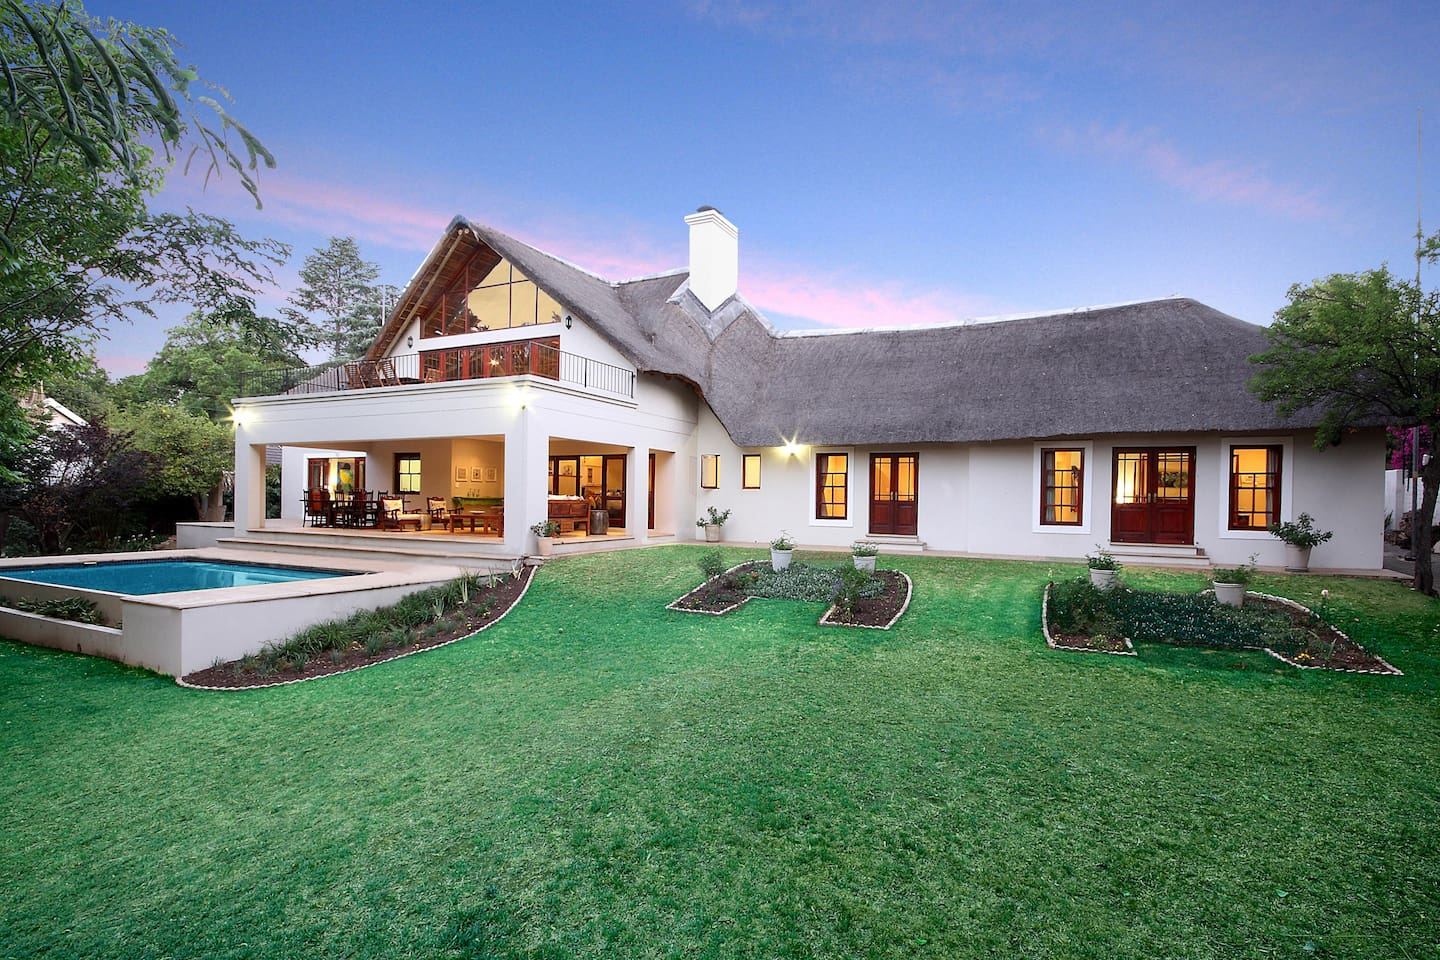 Enjoy peace, tranquility and bird song just minutes from the Sandton CBD.